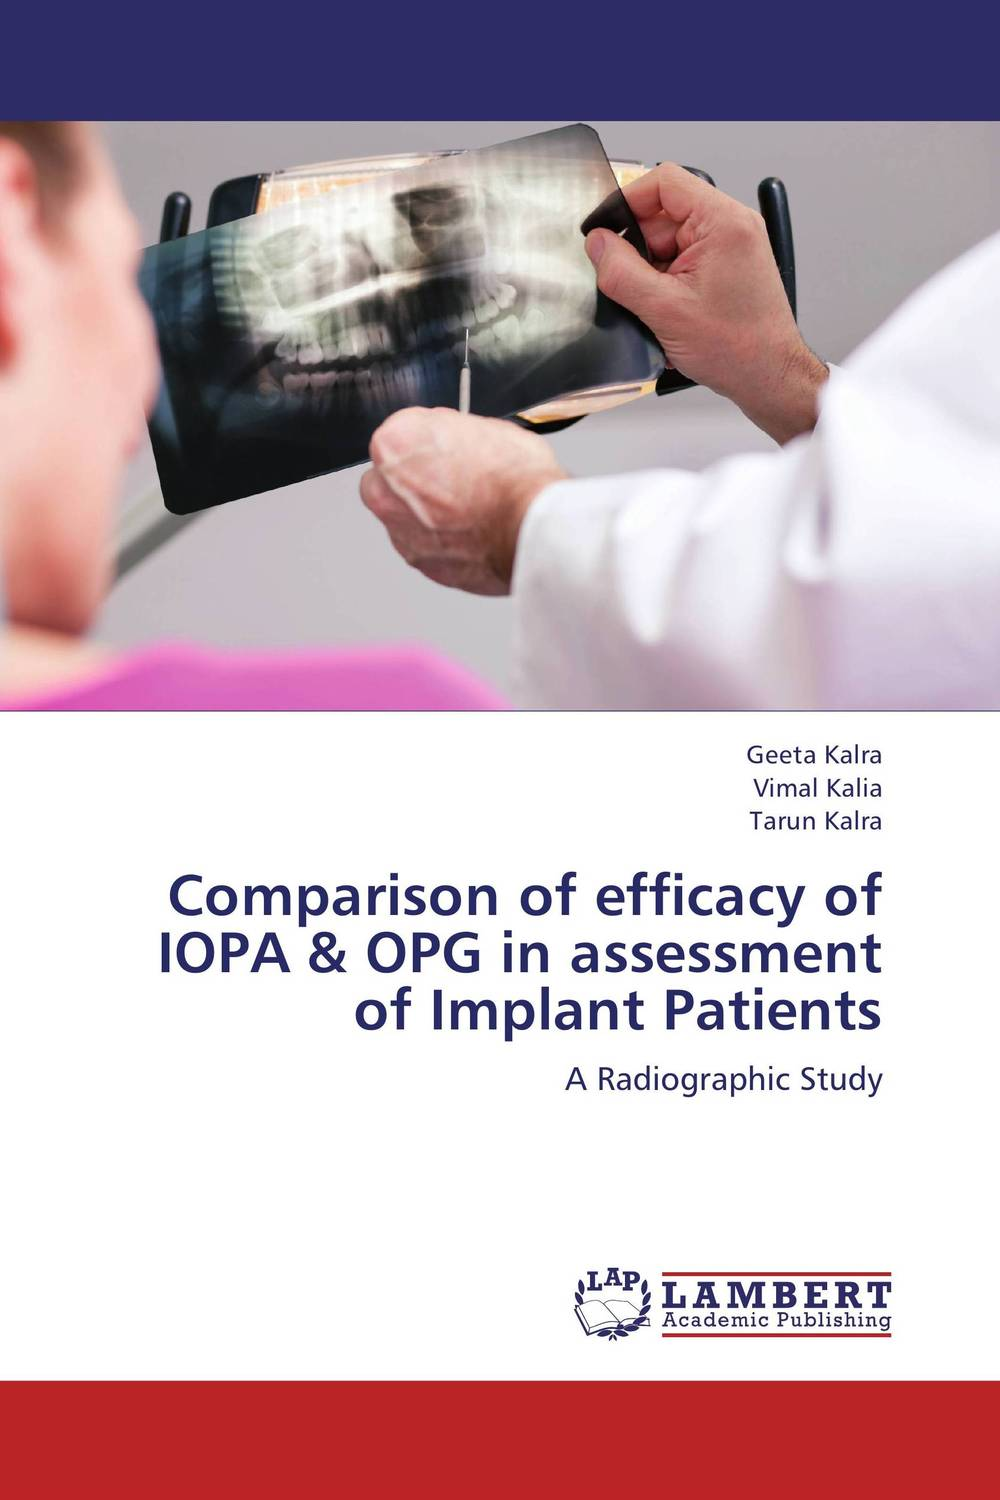 Comparison of efficacy of IOPA & OPG in assessment of Implant Patients esthetics in implant dentistry